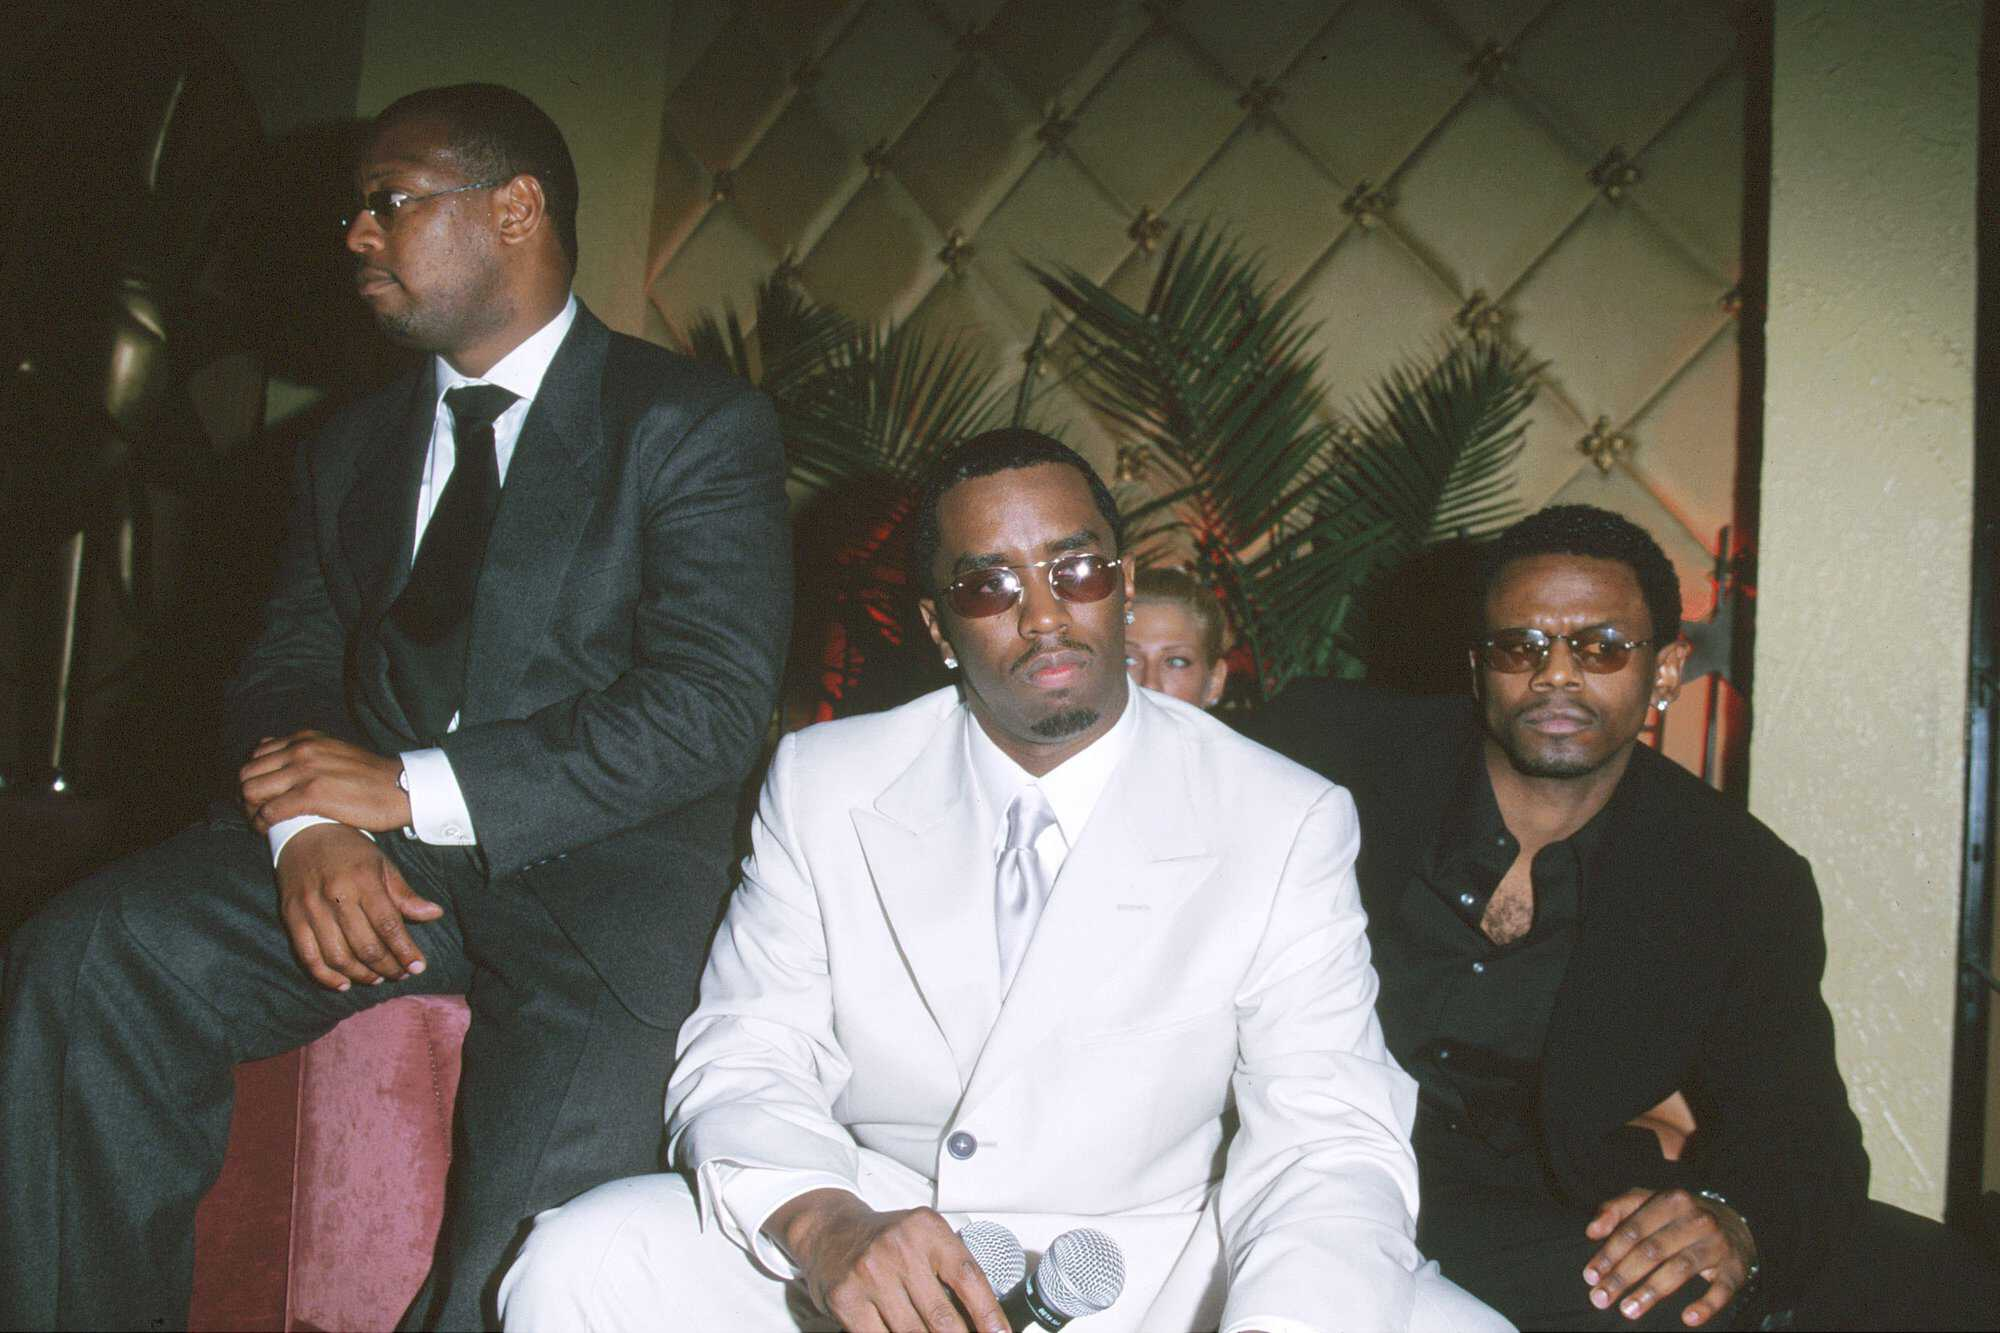 1997-Diddy-Feature-Color.jpg